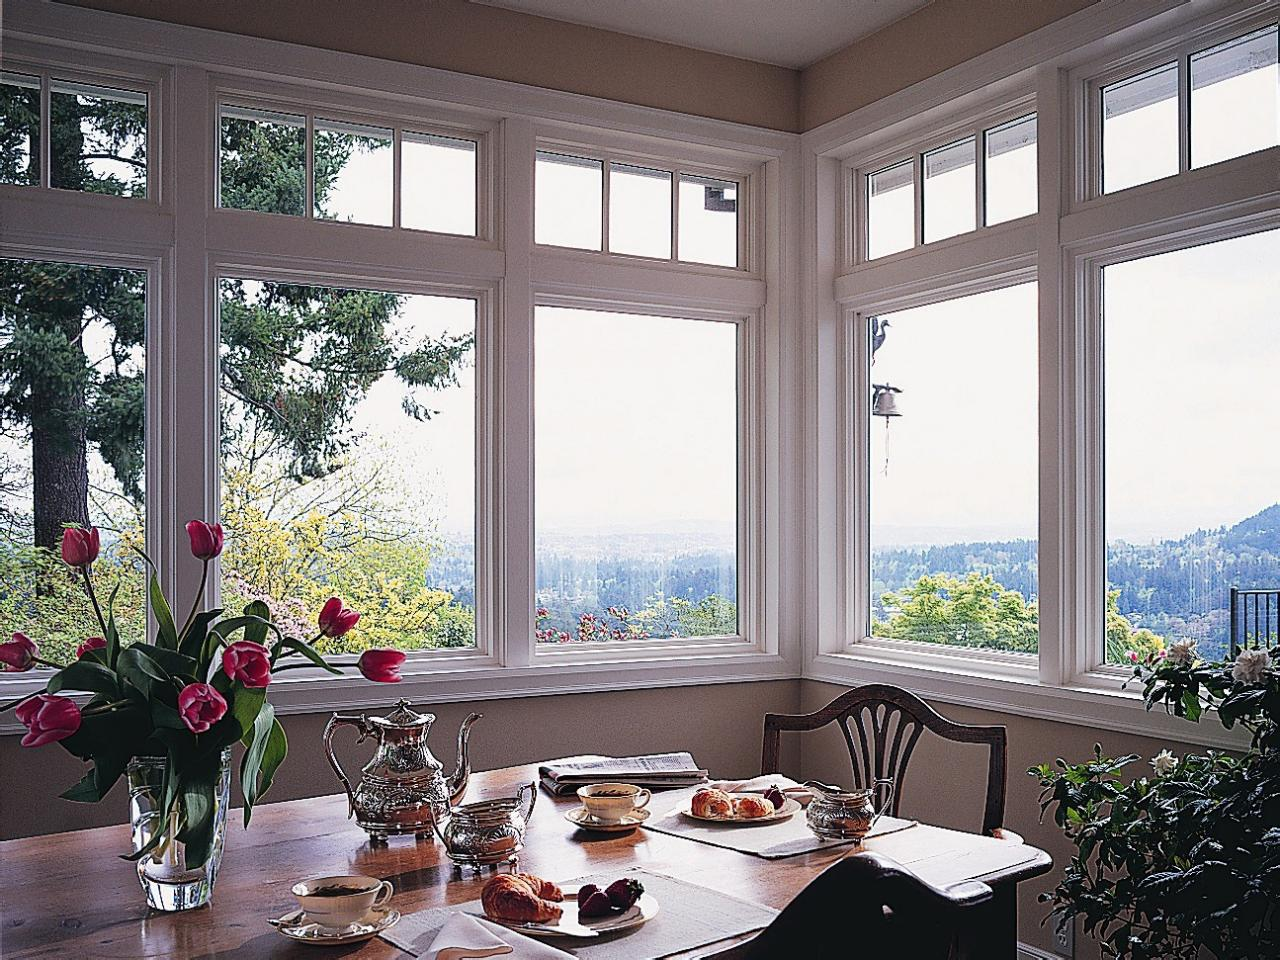 white pella windows matched with tan wall plus wooden dining table for dining table decor ideas